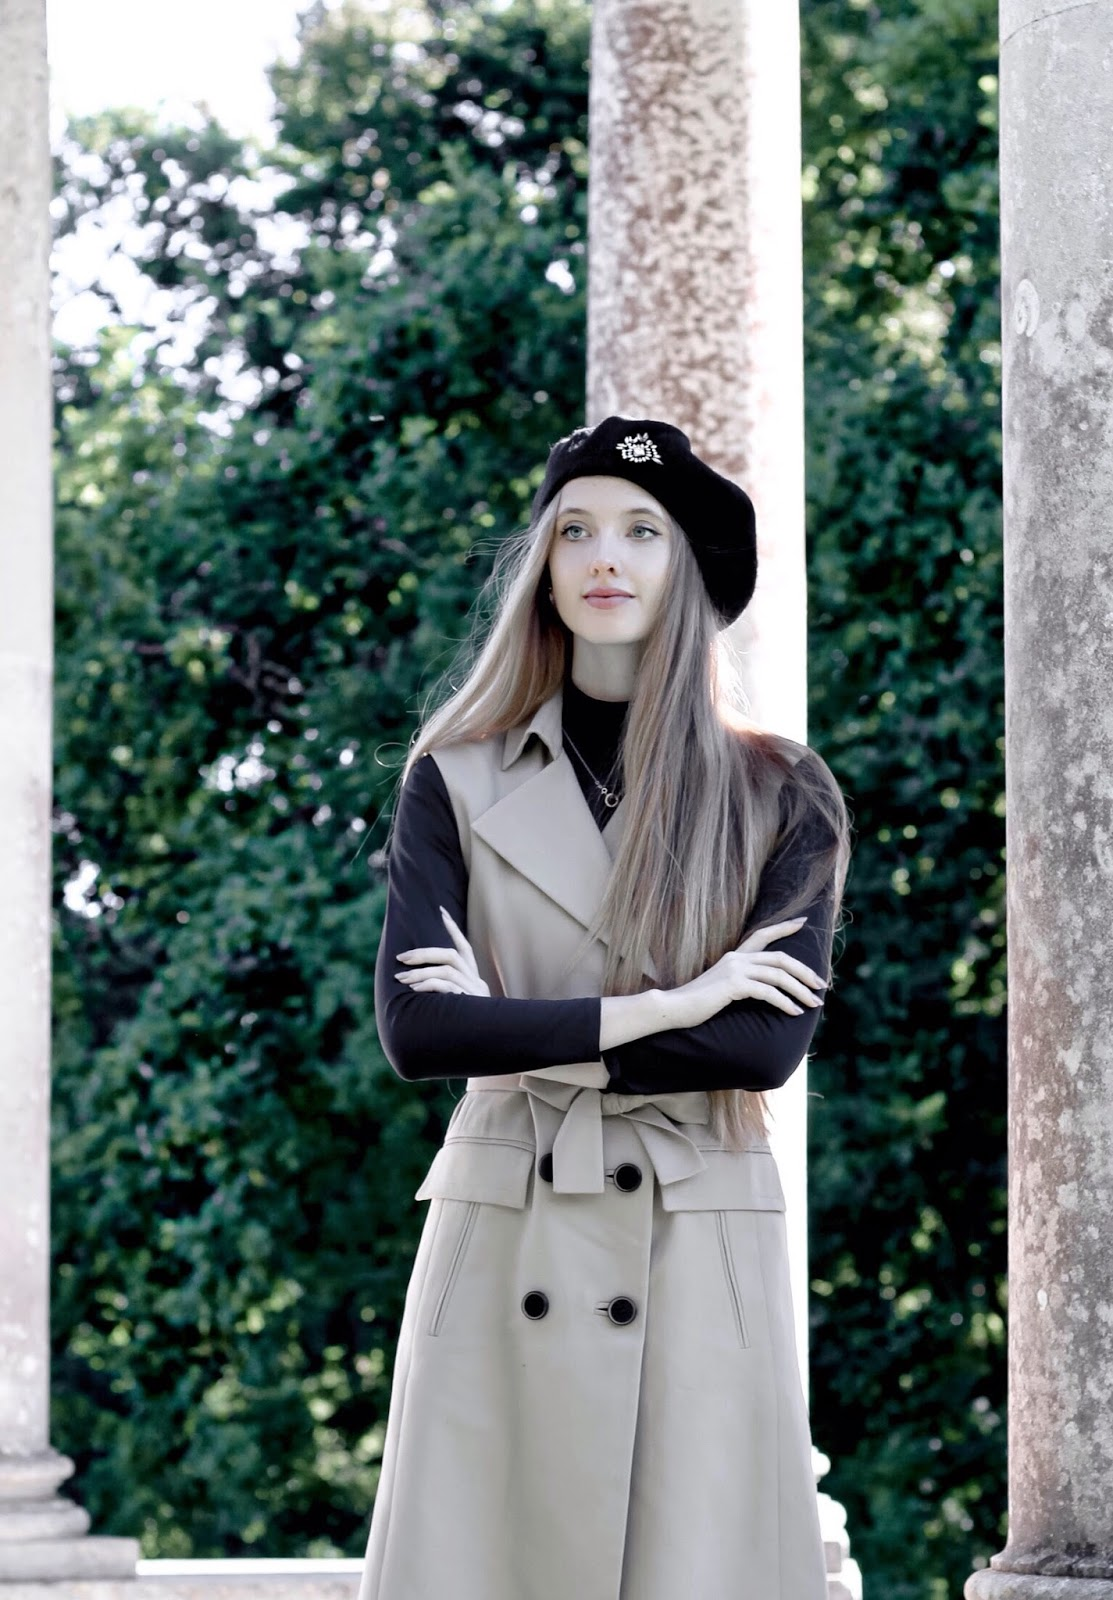 How to Look Parisian Chic in a Beret